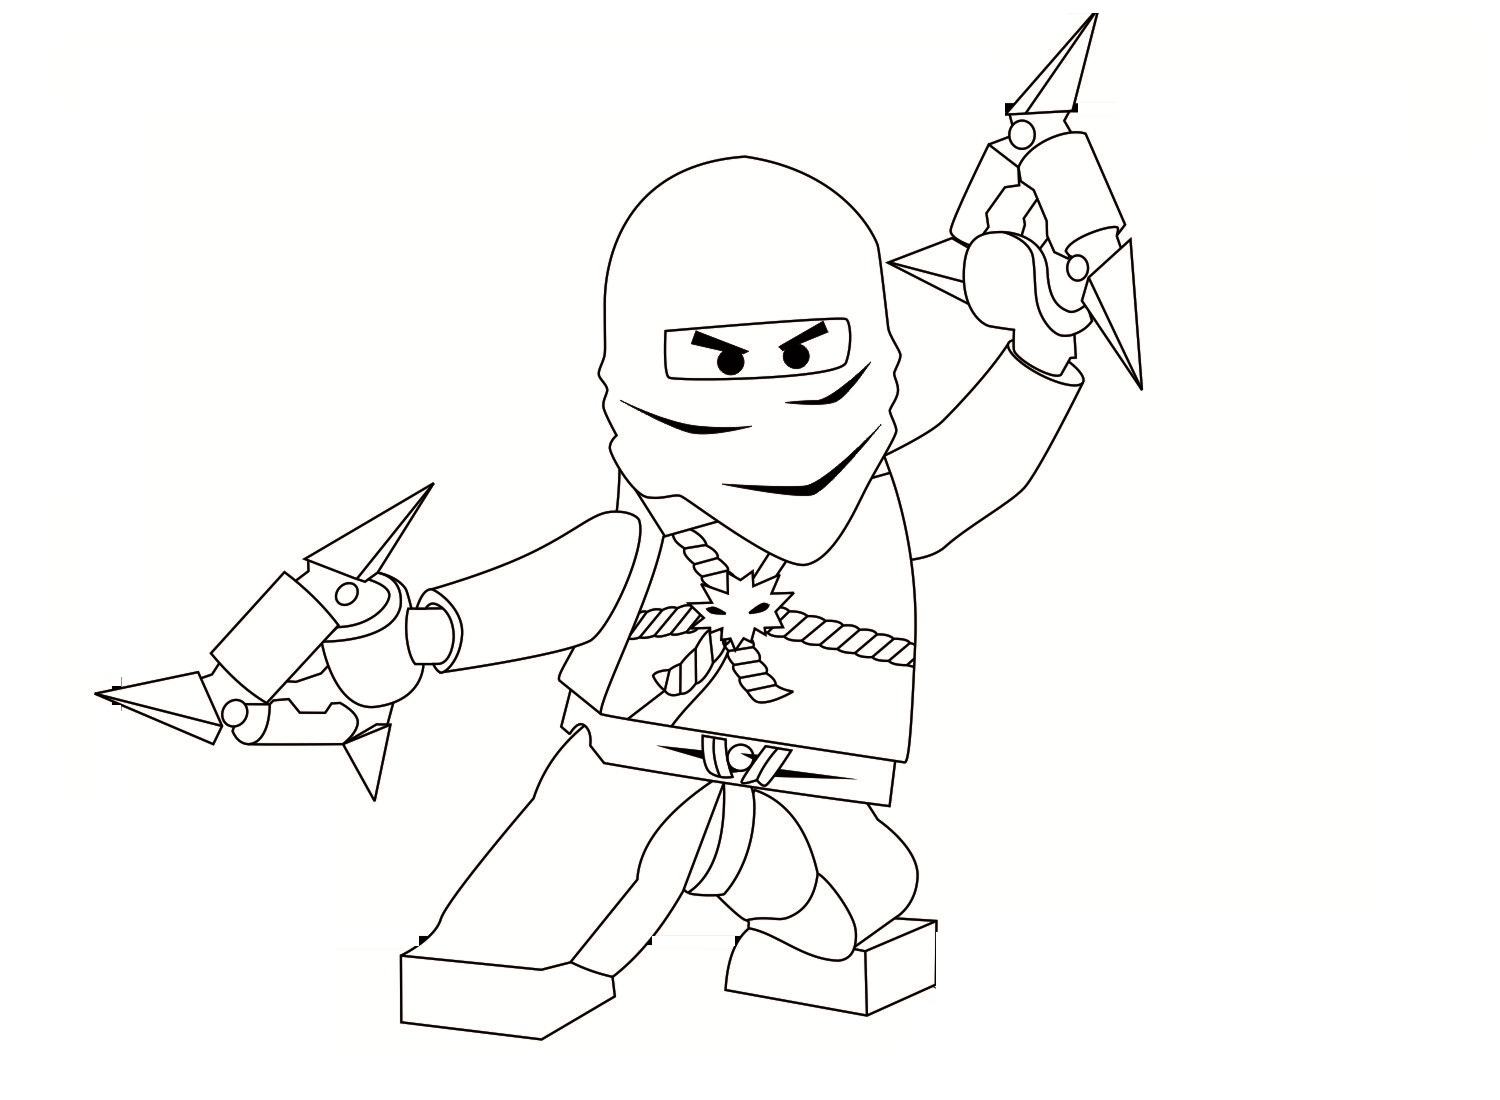 Cole ninjago coloring games online for kids - Printable Ninjago Coloring Pages